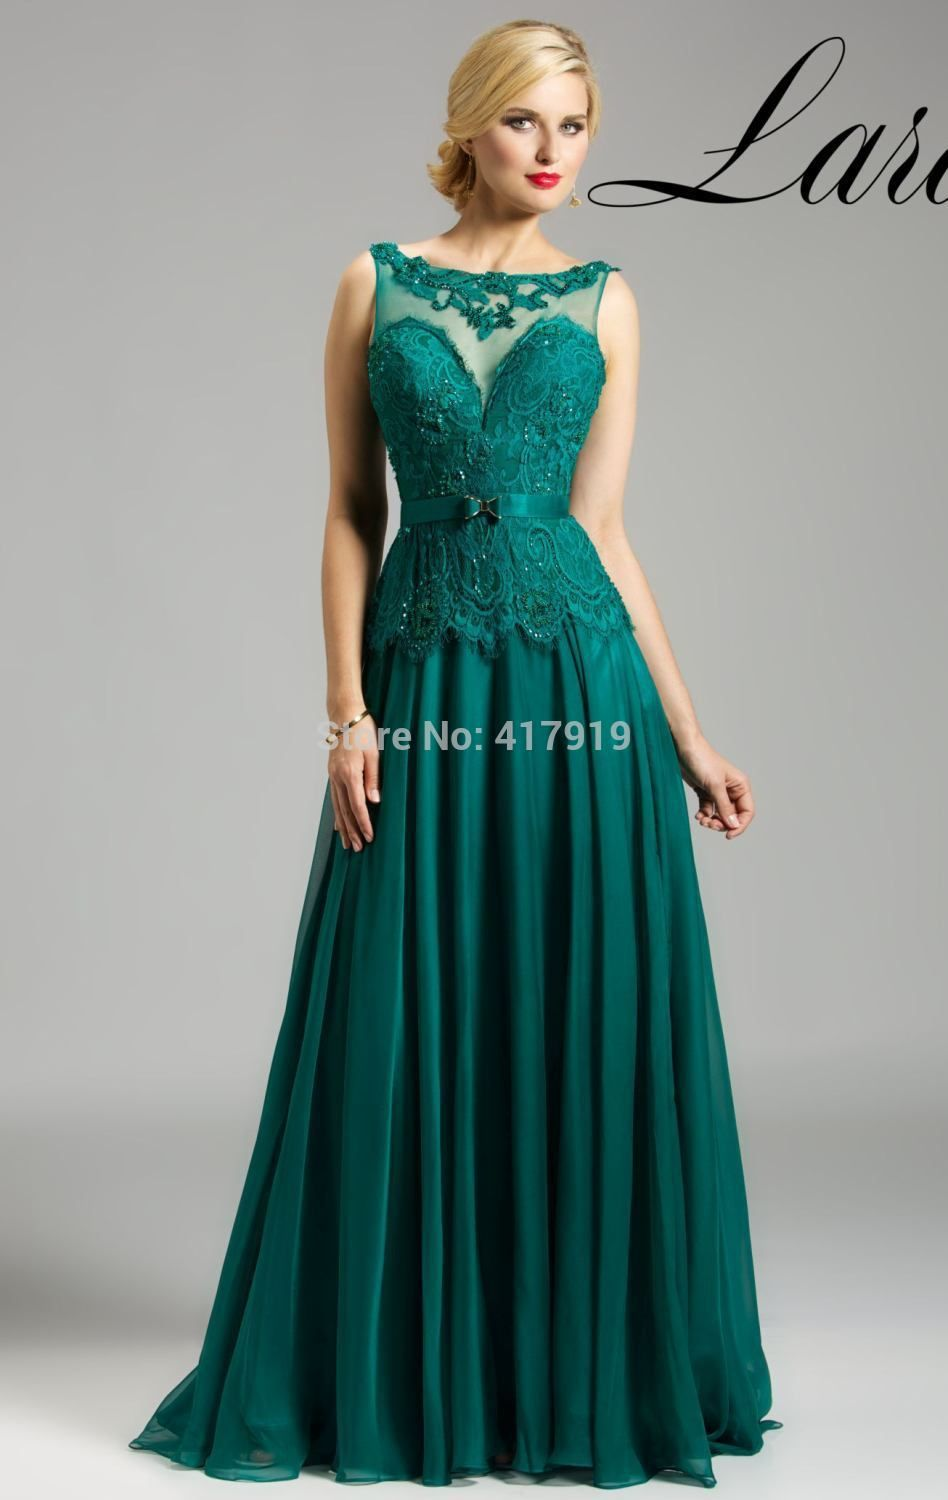 Delighted Dresses For Party Uk Gallery - Wedding Ideas - memiocall.com